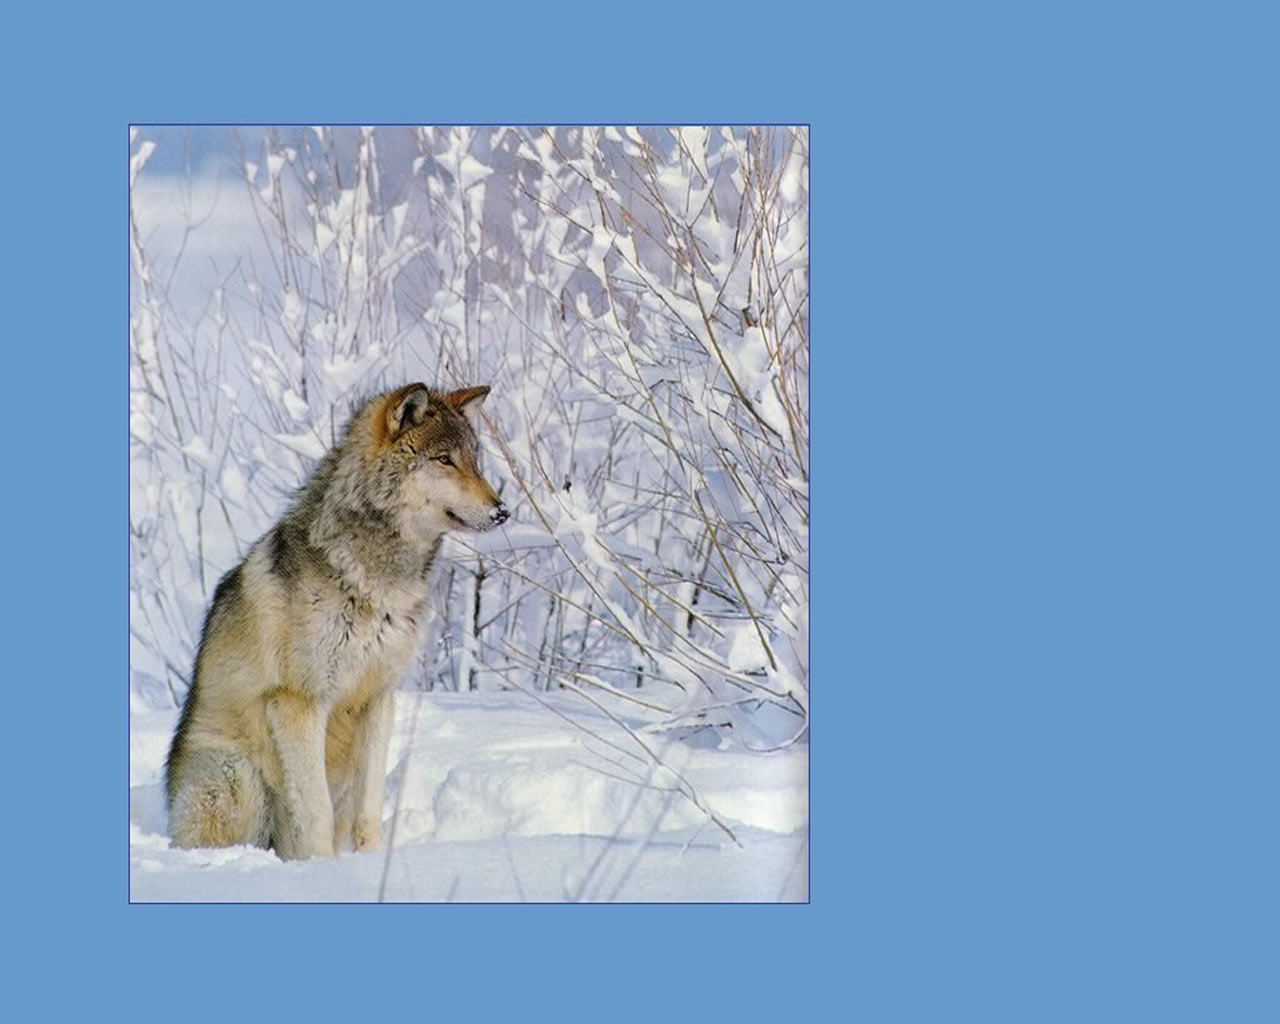 download wallpaper: een wolf in de sneeuw wallpaper